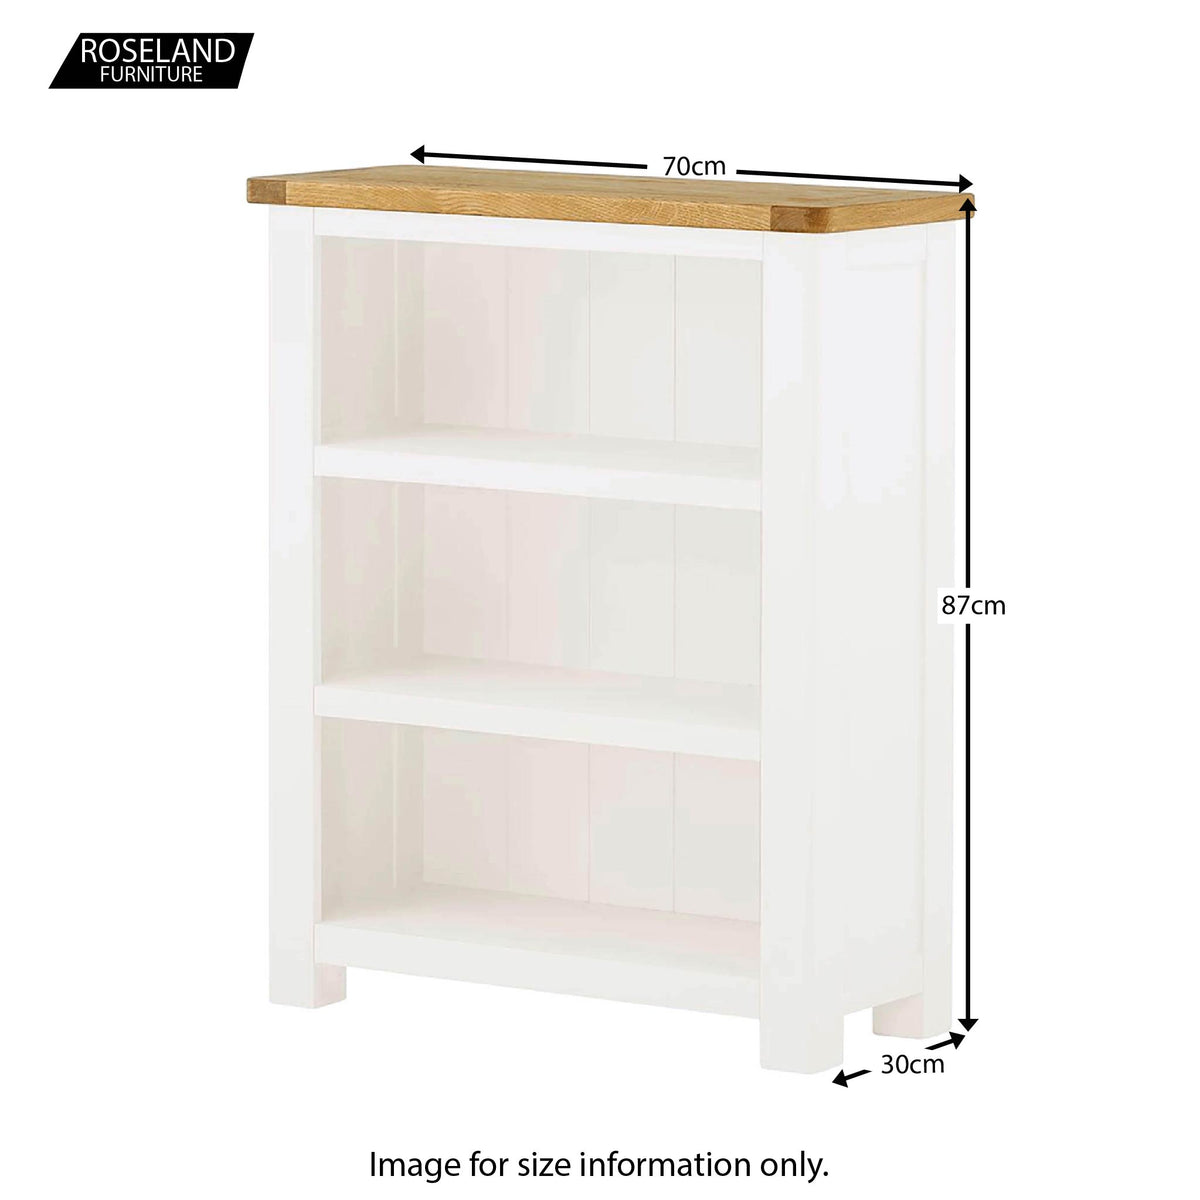 Padstow White Small Low Bookcase - Size Guide